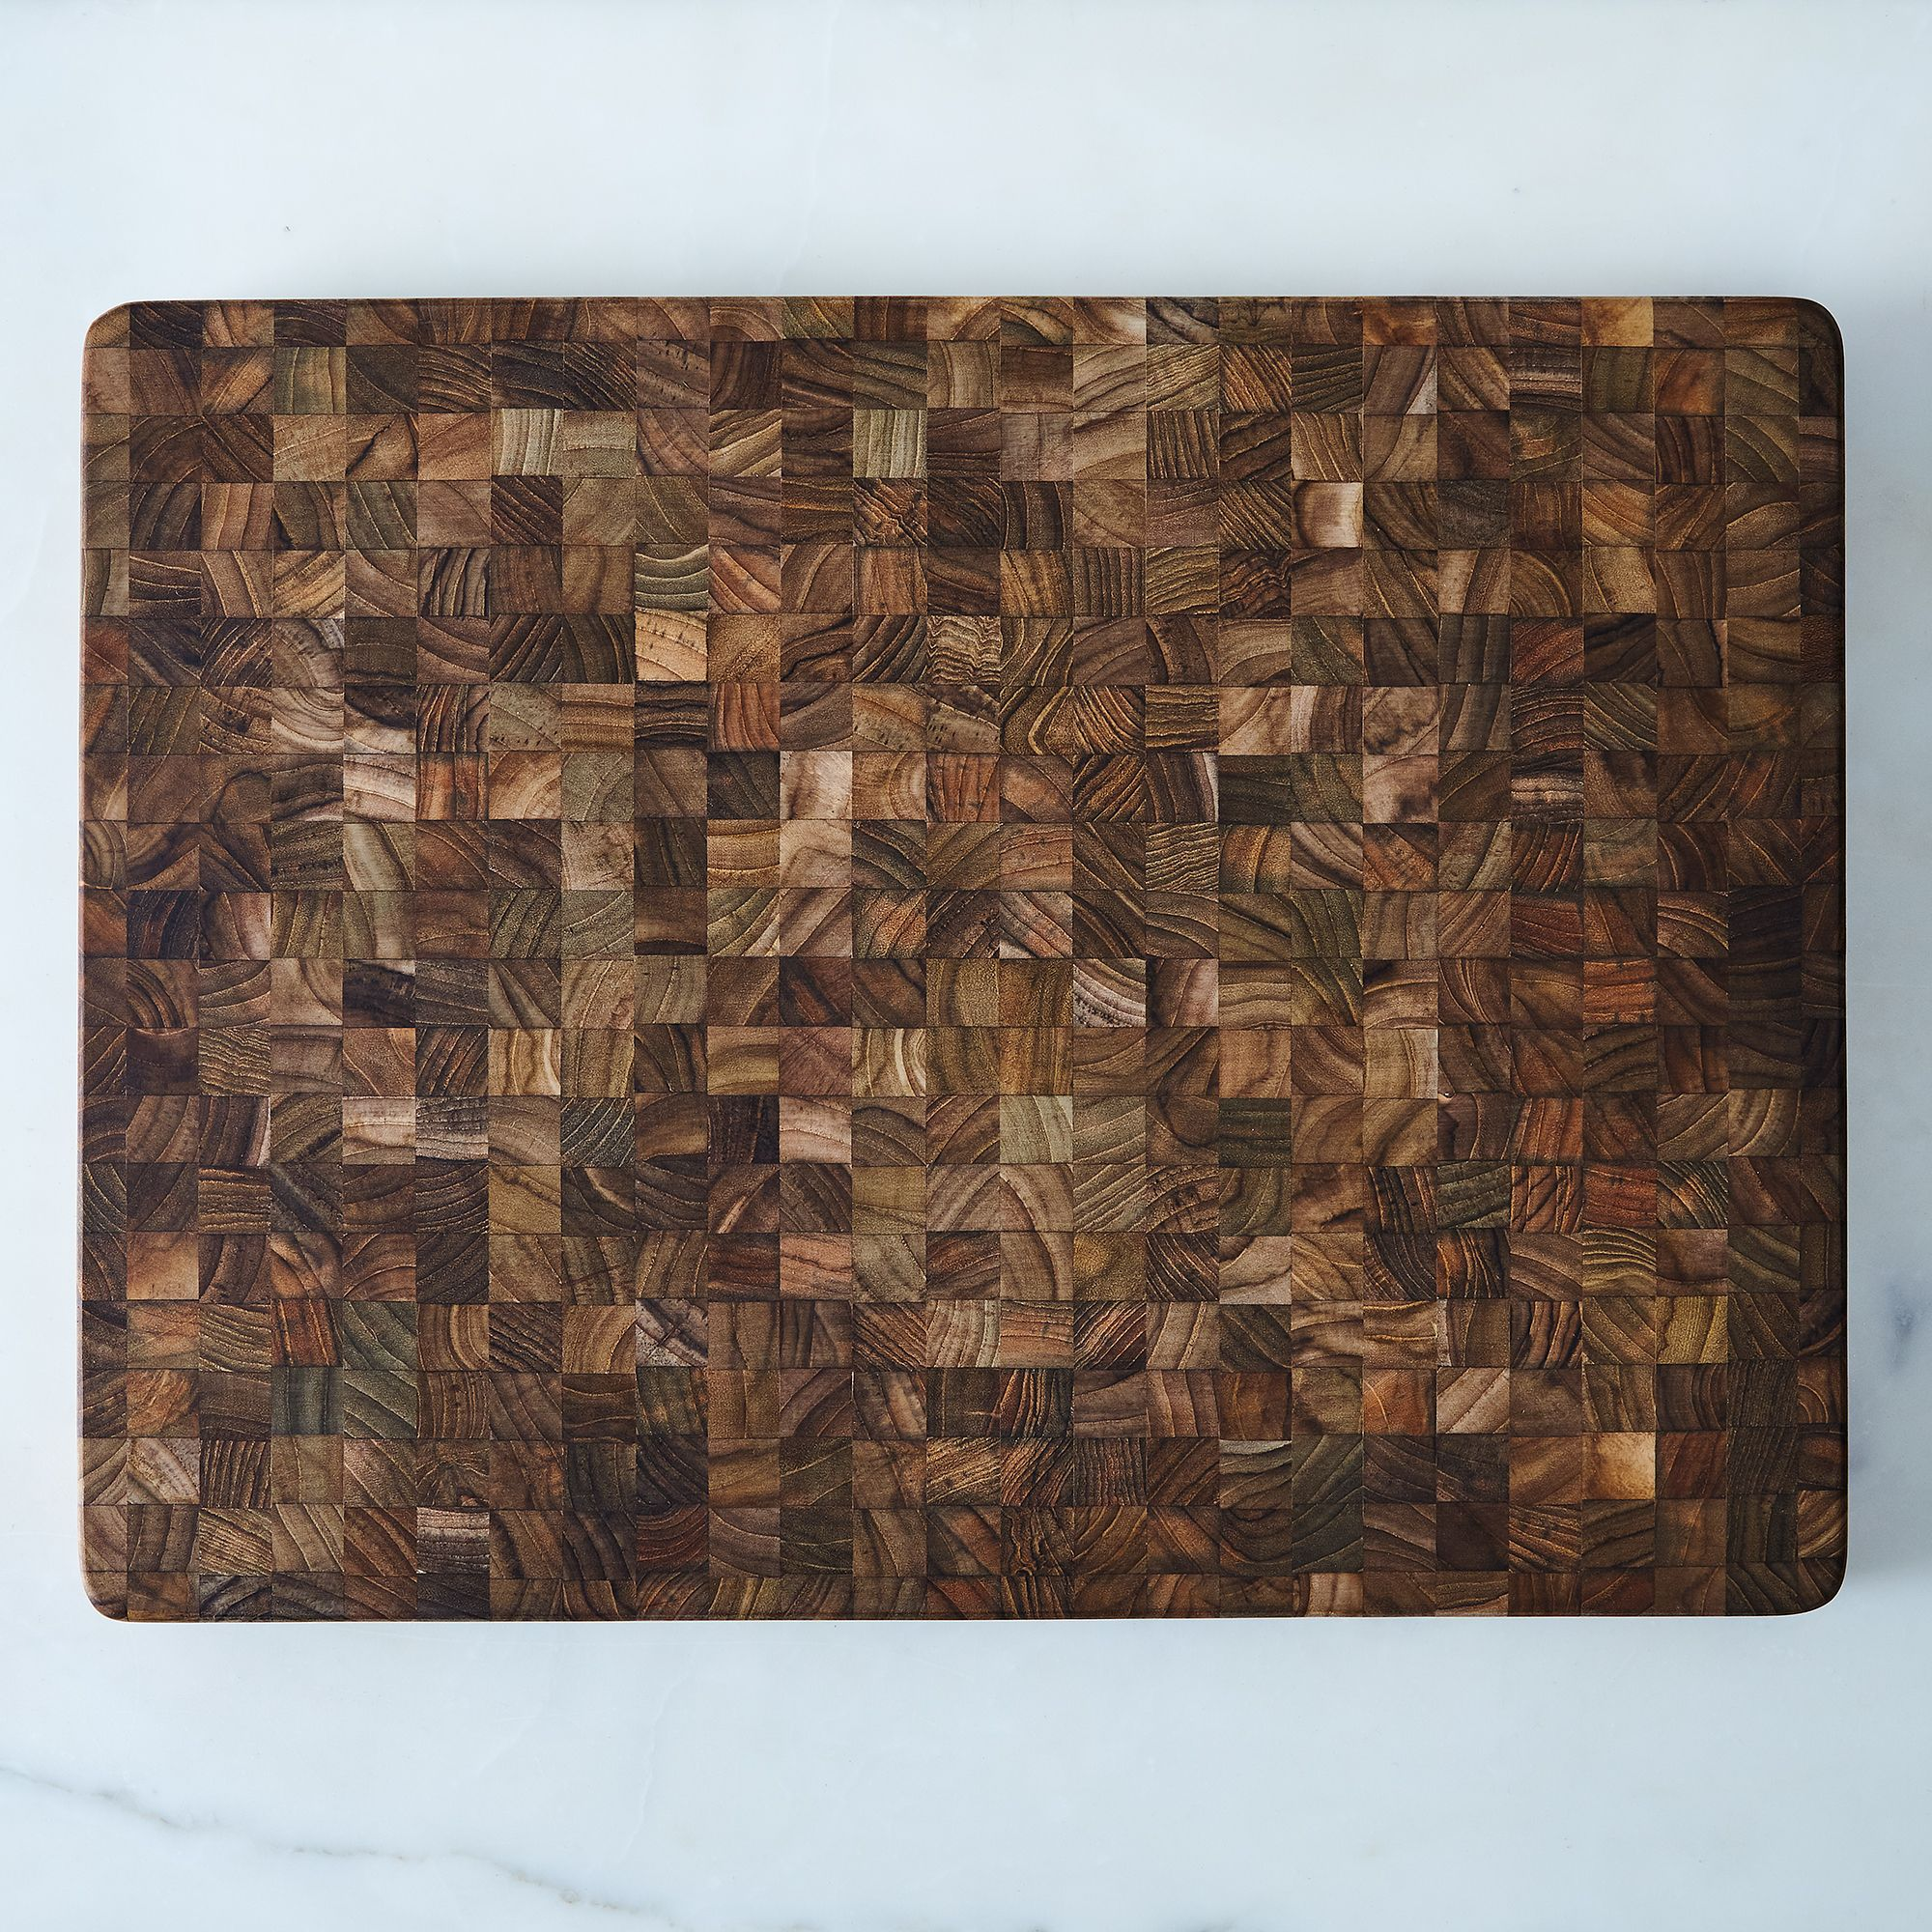 30cd7289 858f 497c b9b5 ec4e67e6398f  2017 0209 proteak large end grain cutting board detail silo rocky luten 003